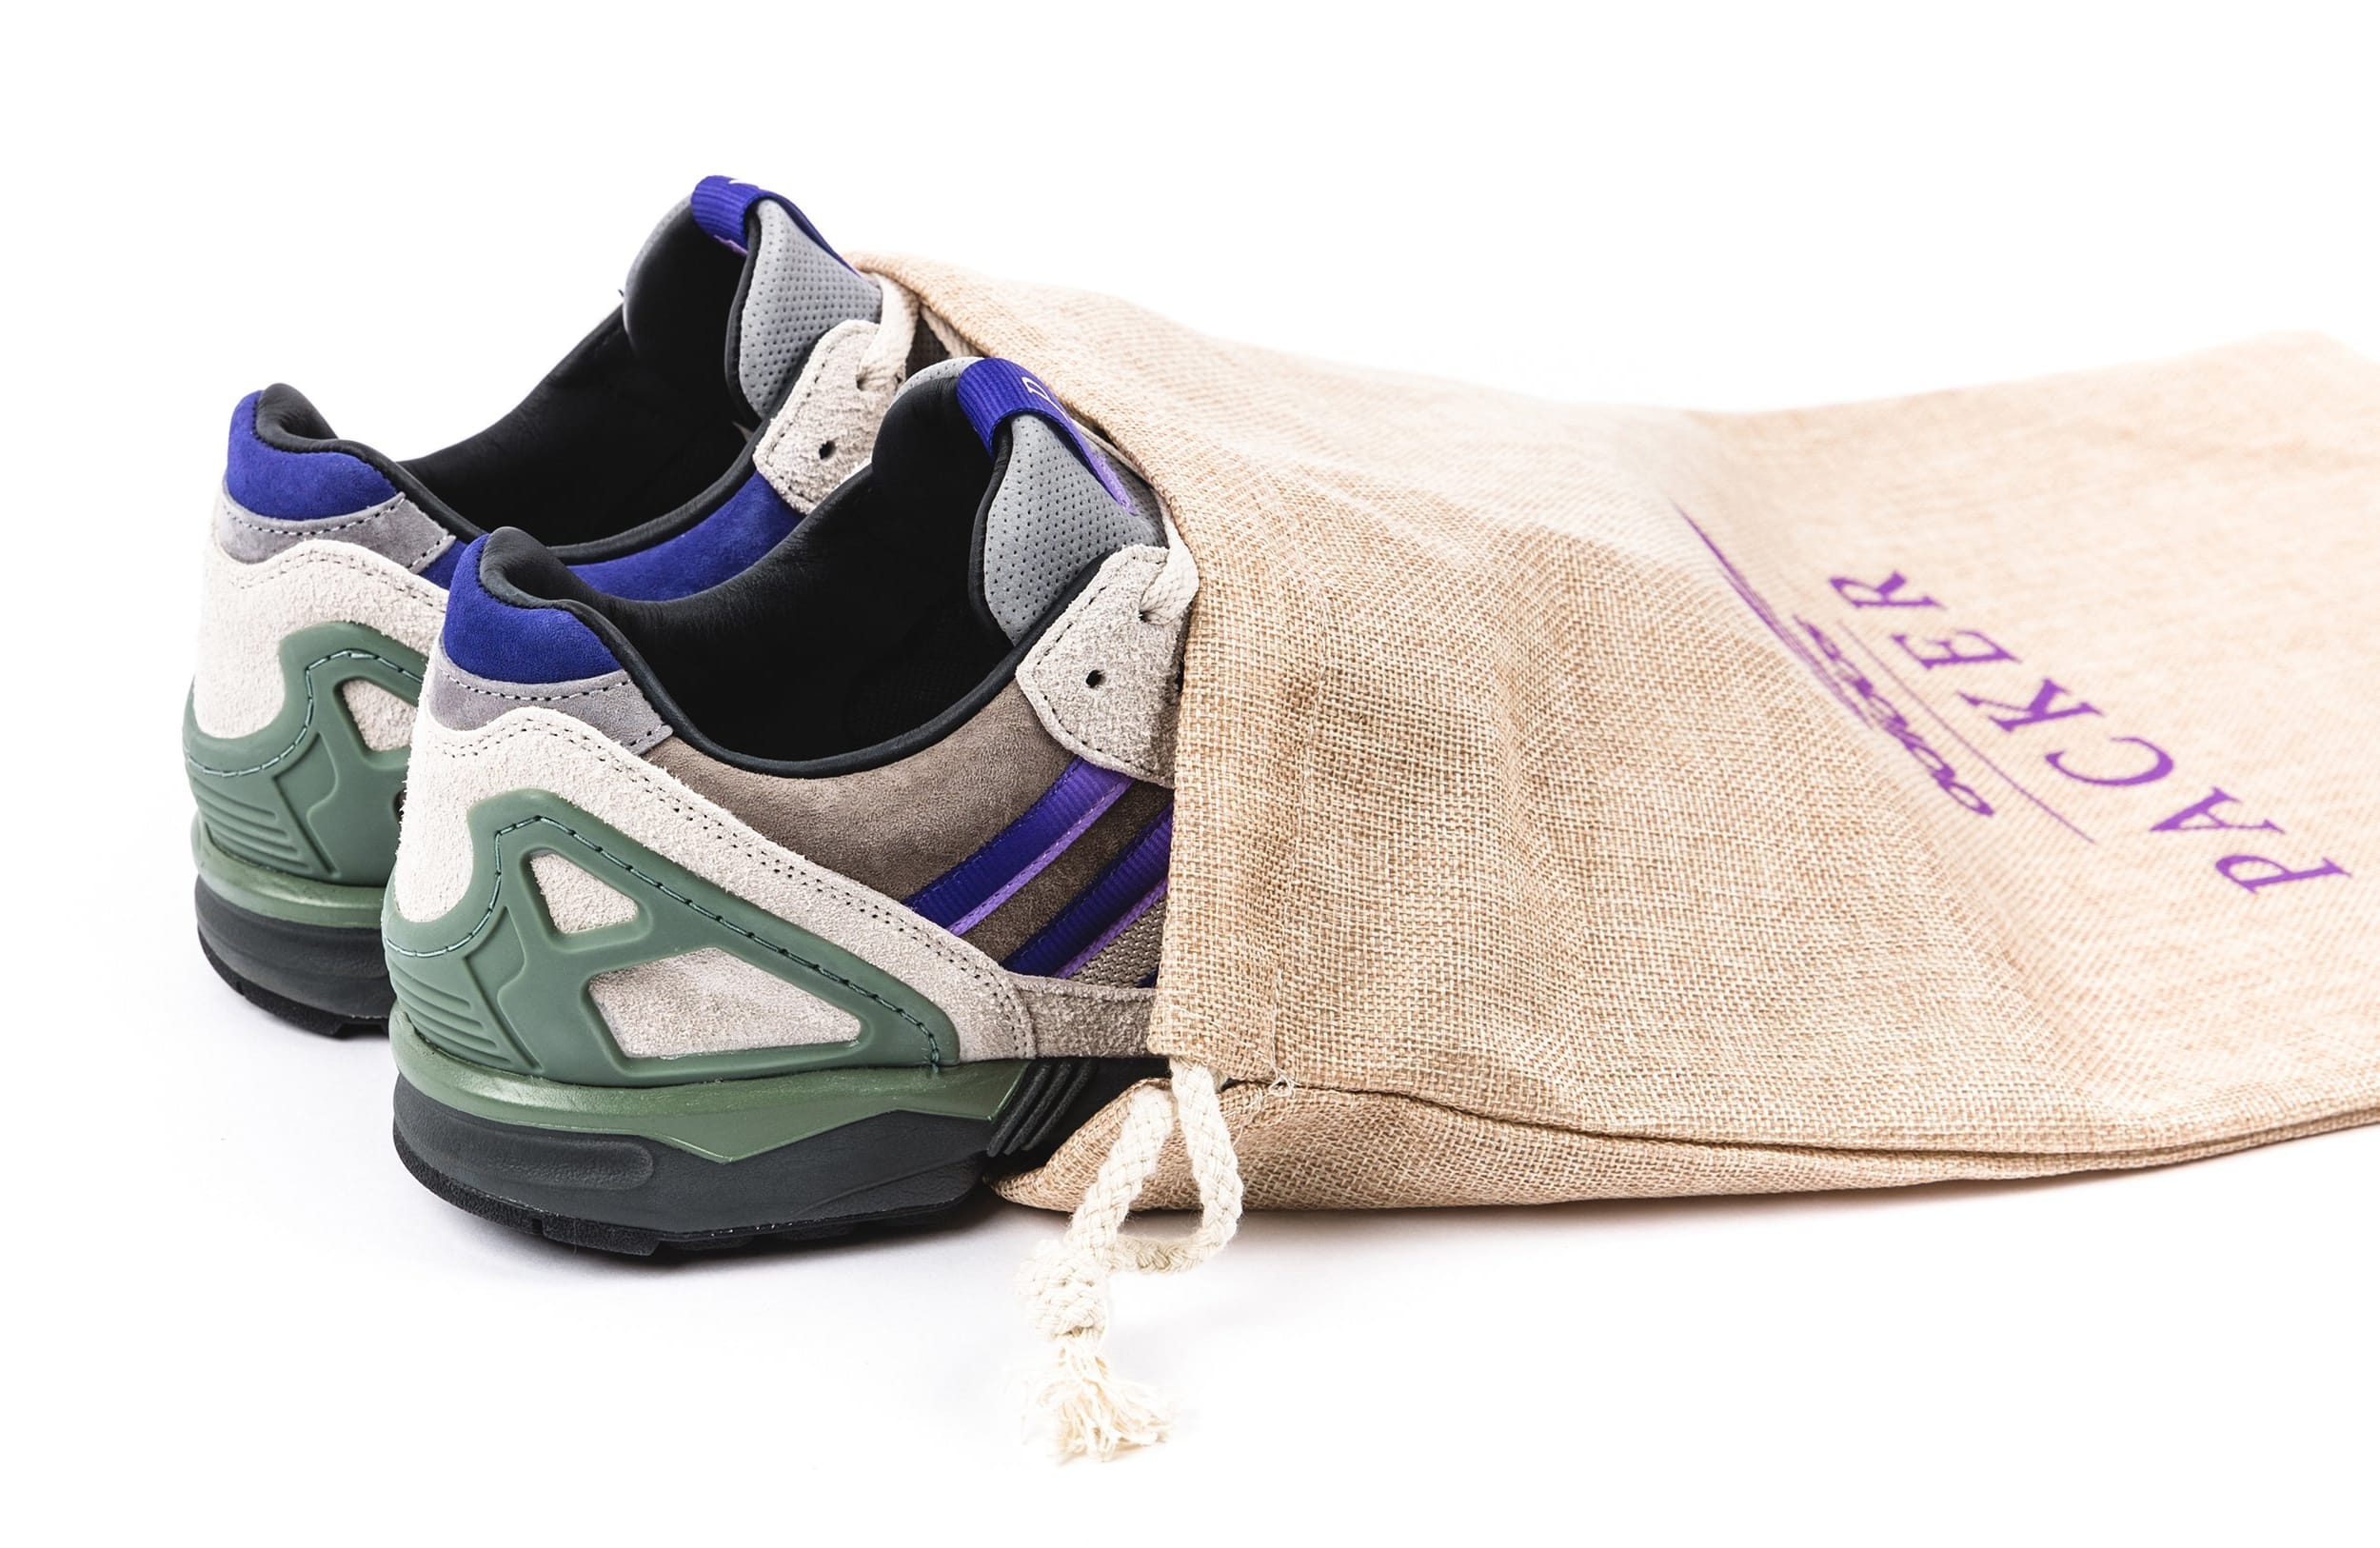 packer-shoes-adidas-consortium-zx-9000-meadow-violet